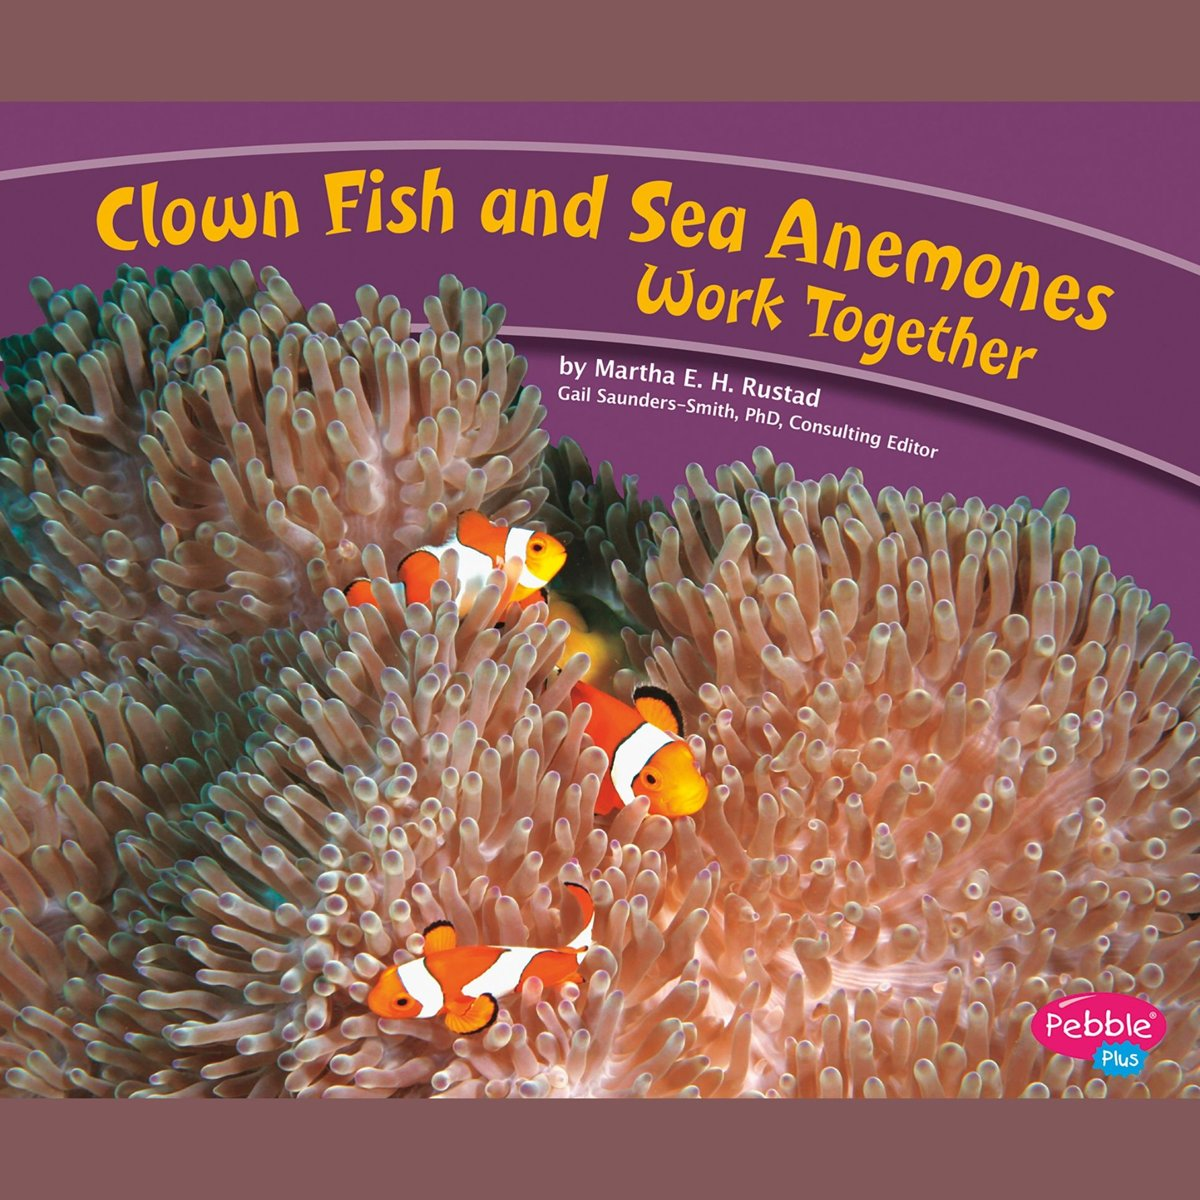 Clown Fish and Sea Anemones Work Together